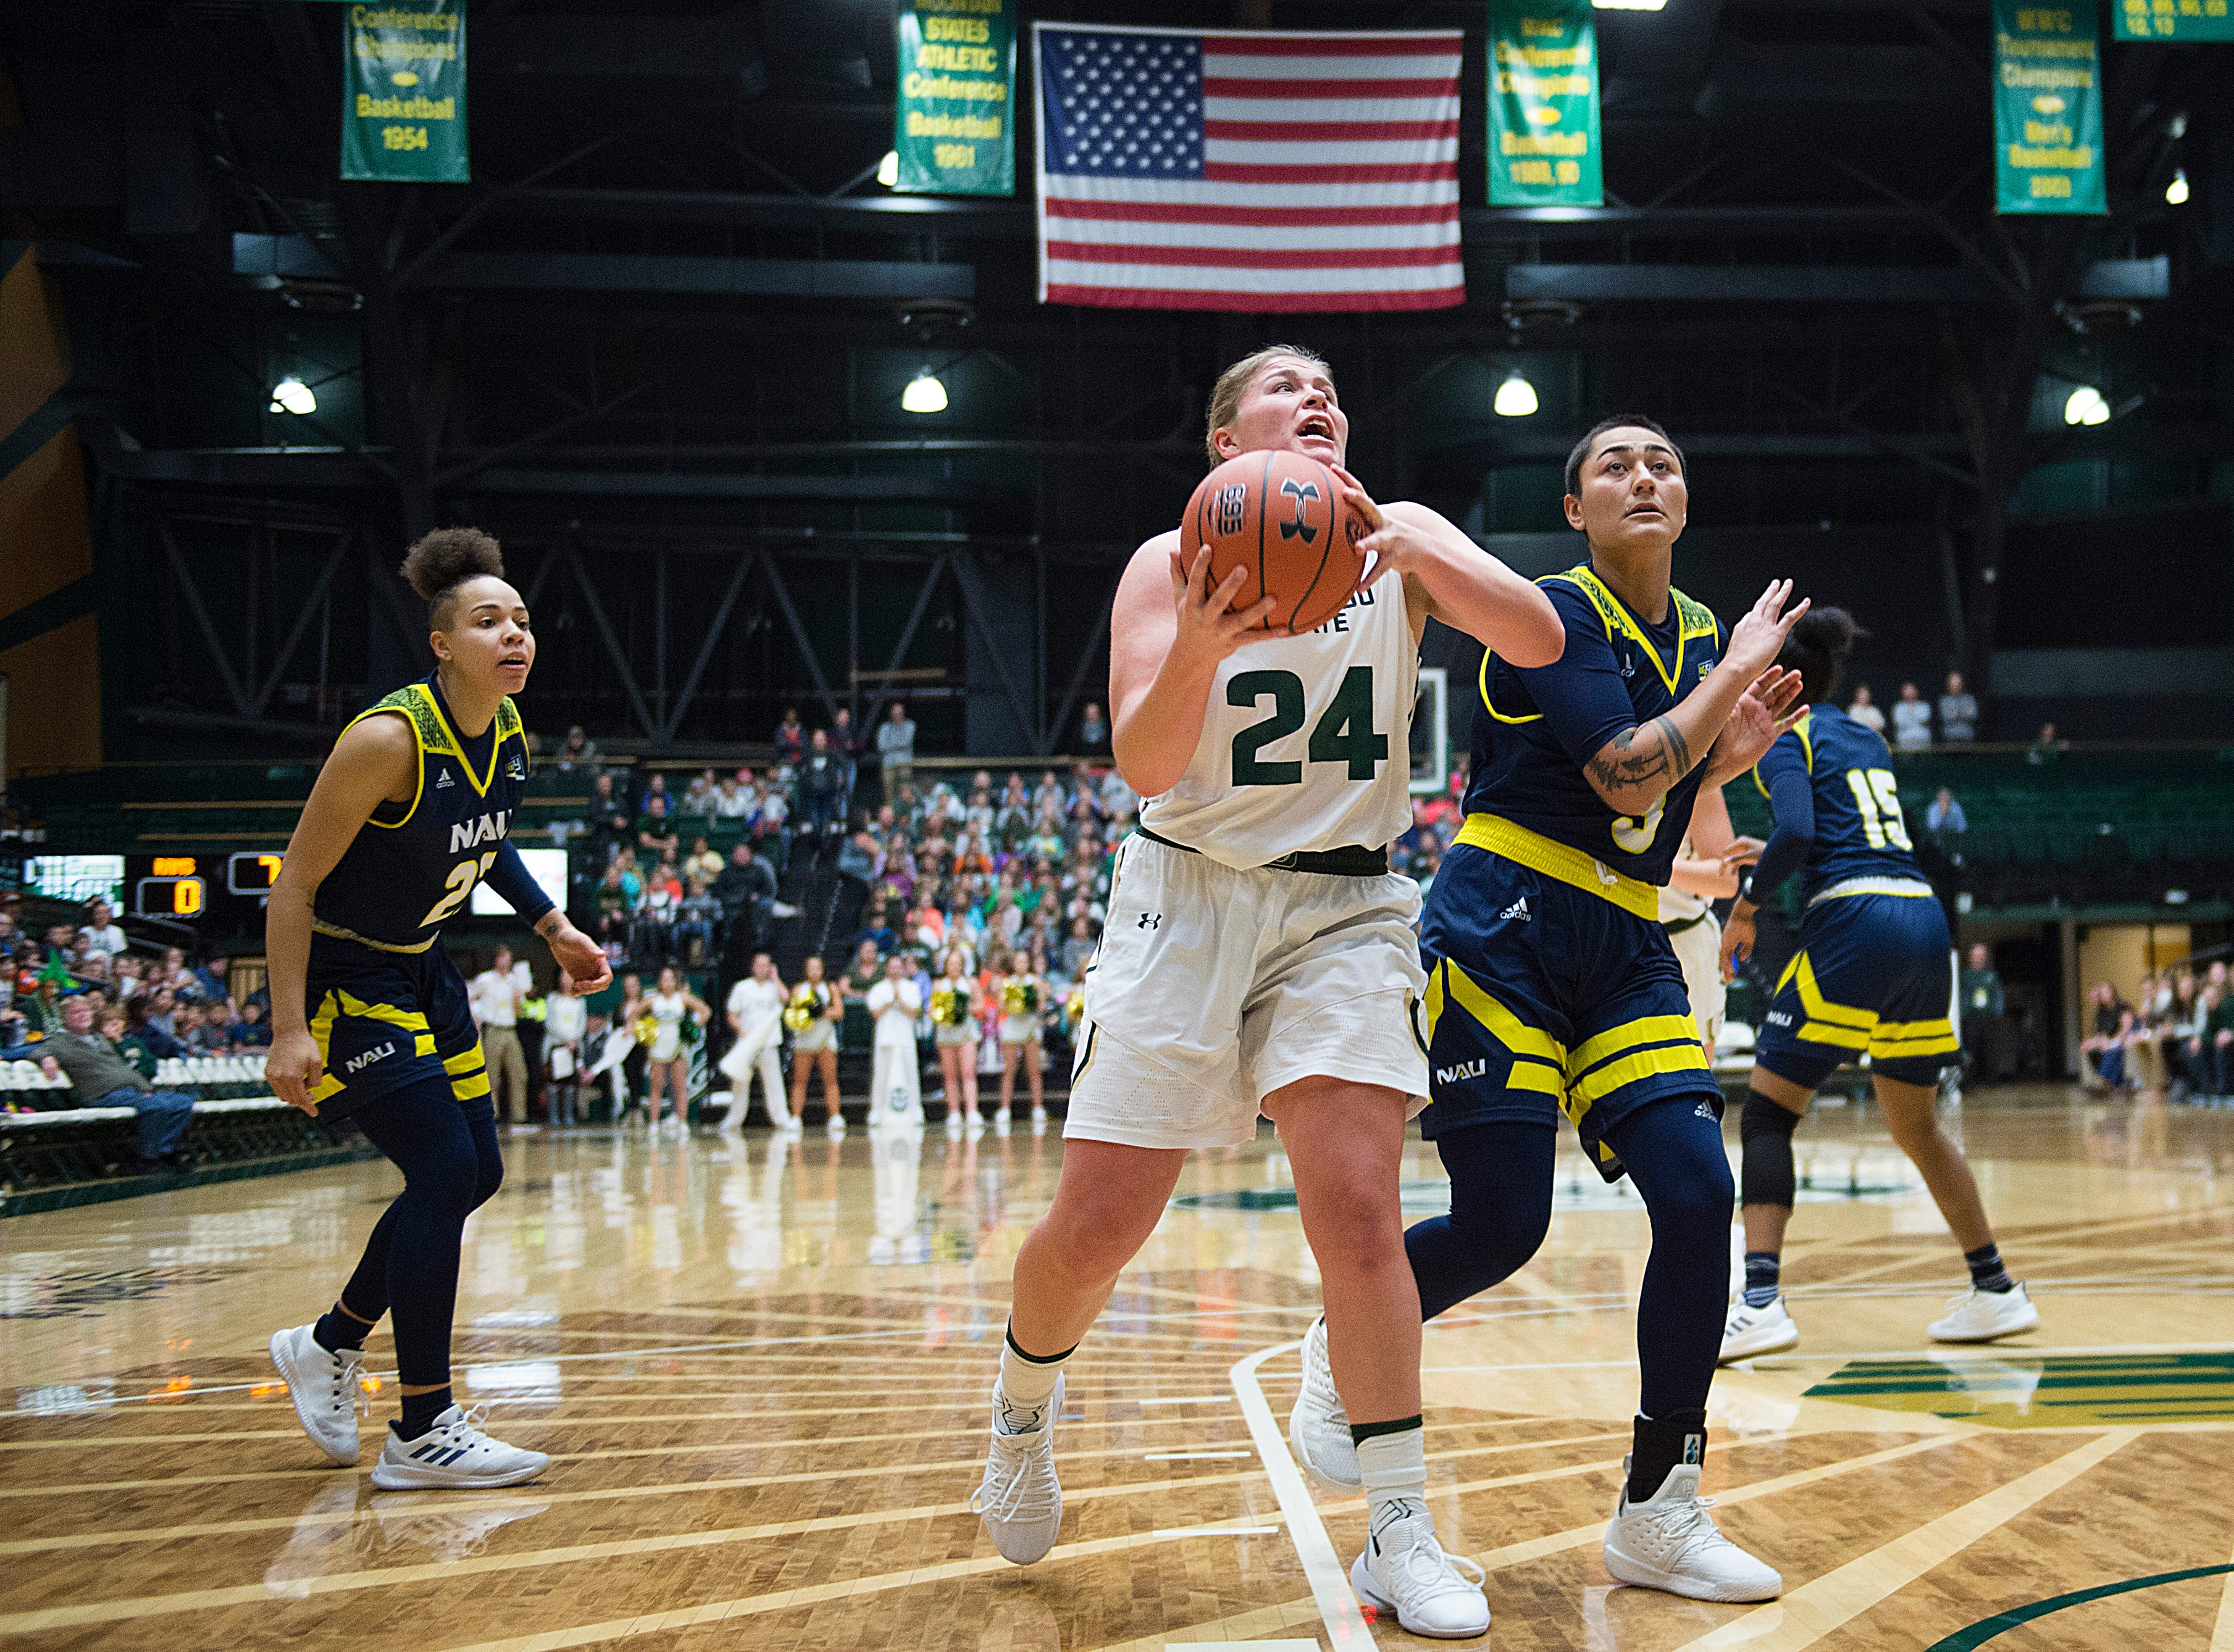 CSU guard Mollie Mounsey breaks through Lumberjacks defense during a game against Northern Arizona at Moby Arena on Wednesday, December 5, 2018.